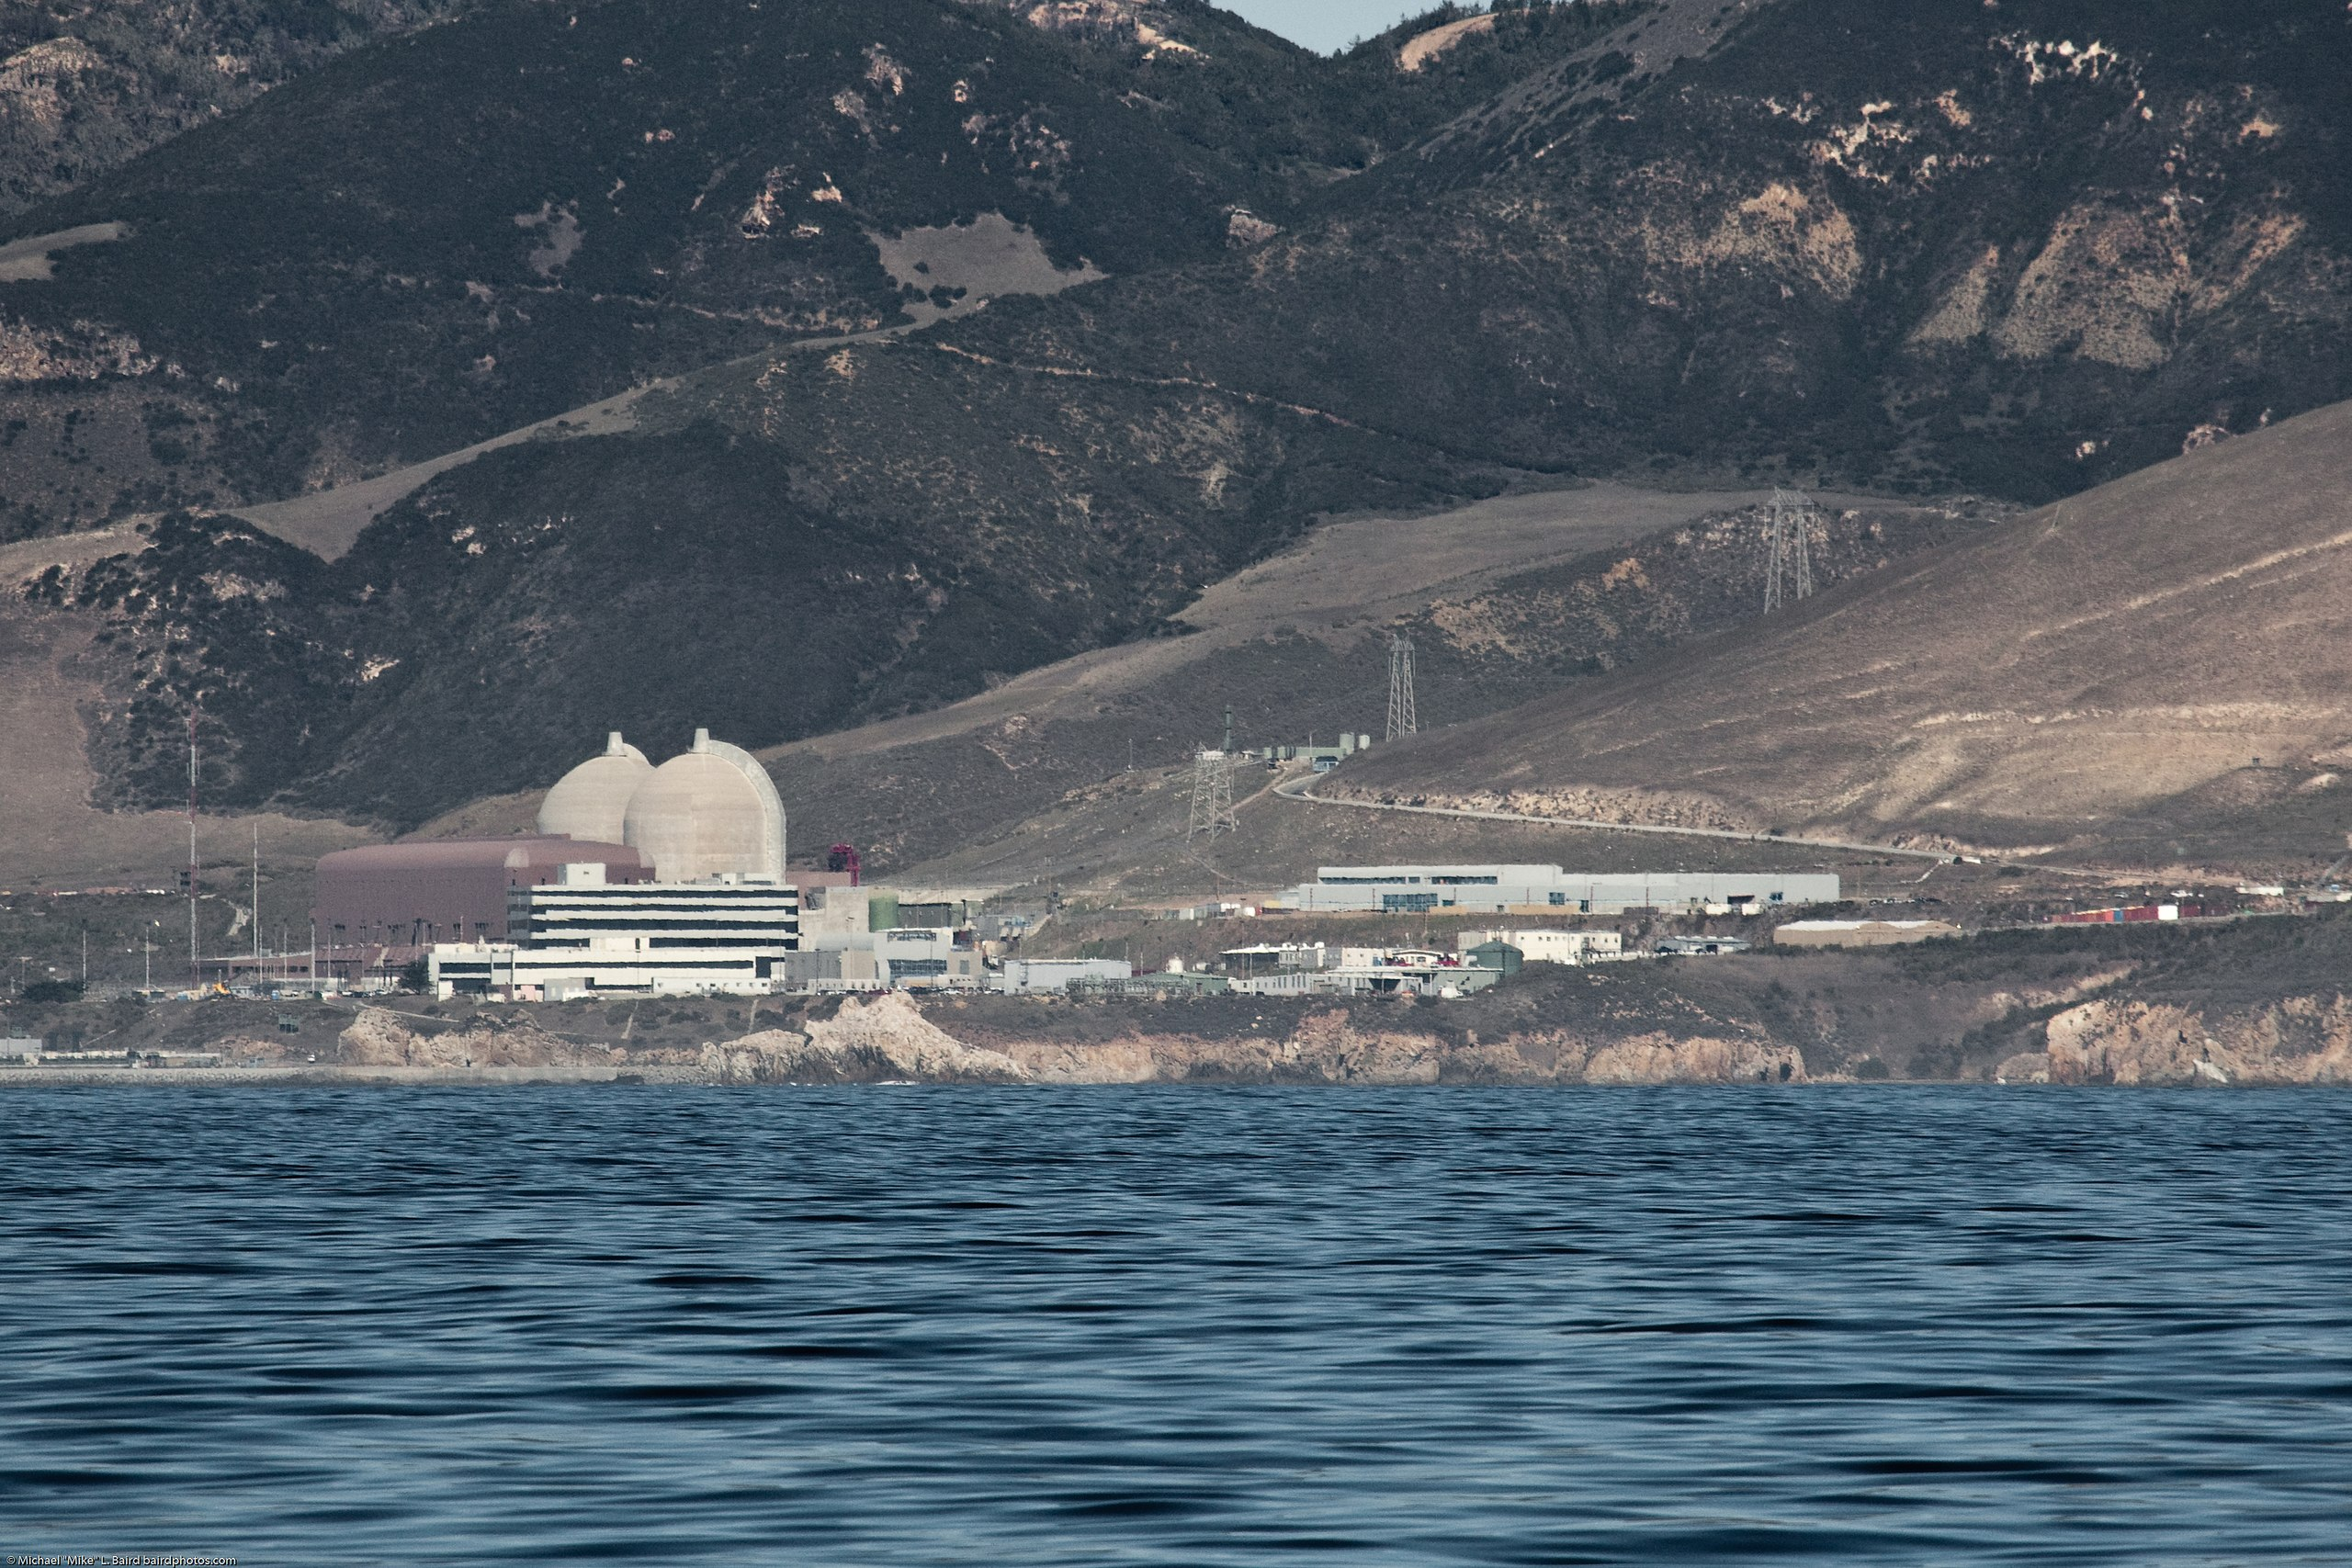 Fire at Rickety Diablo Canyon Nuclear Plant Gives California a Scare — Shutdown Slated for 2025